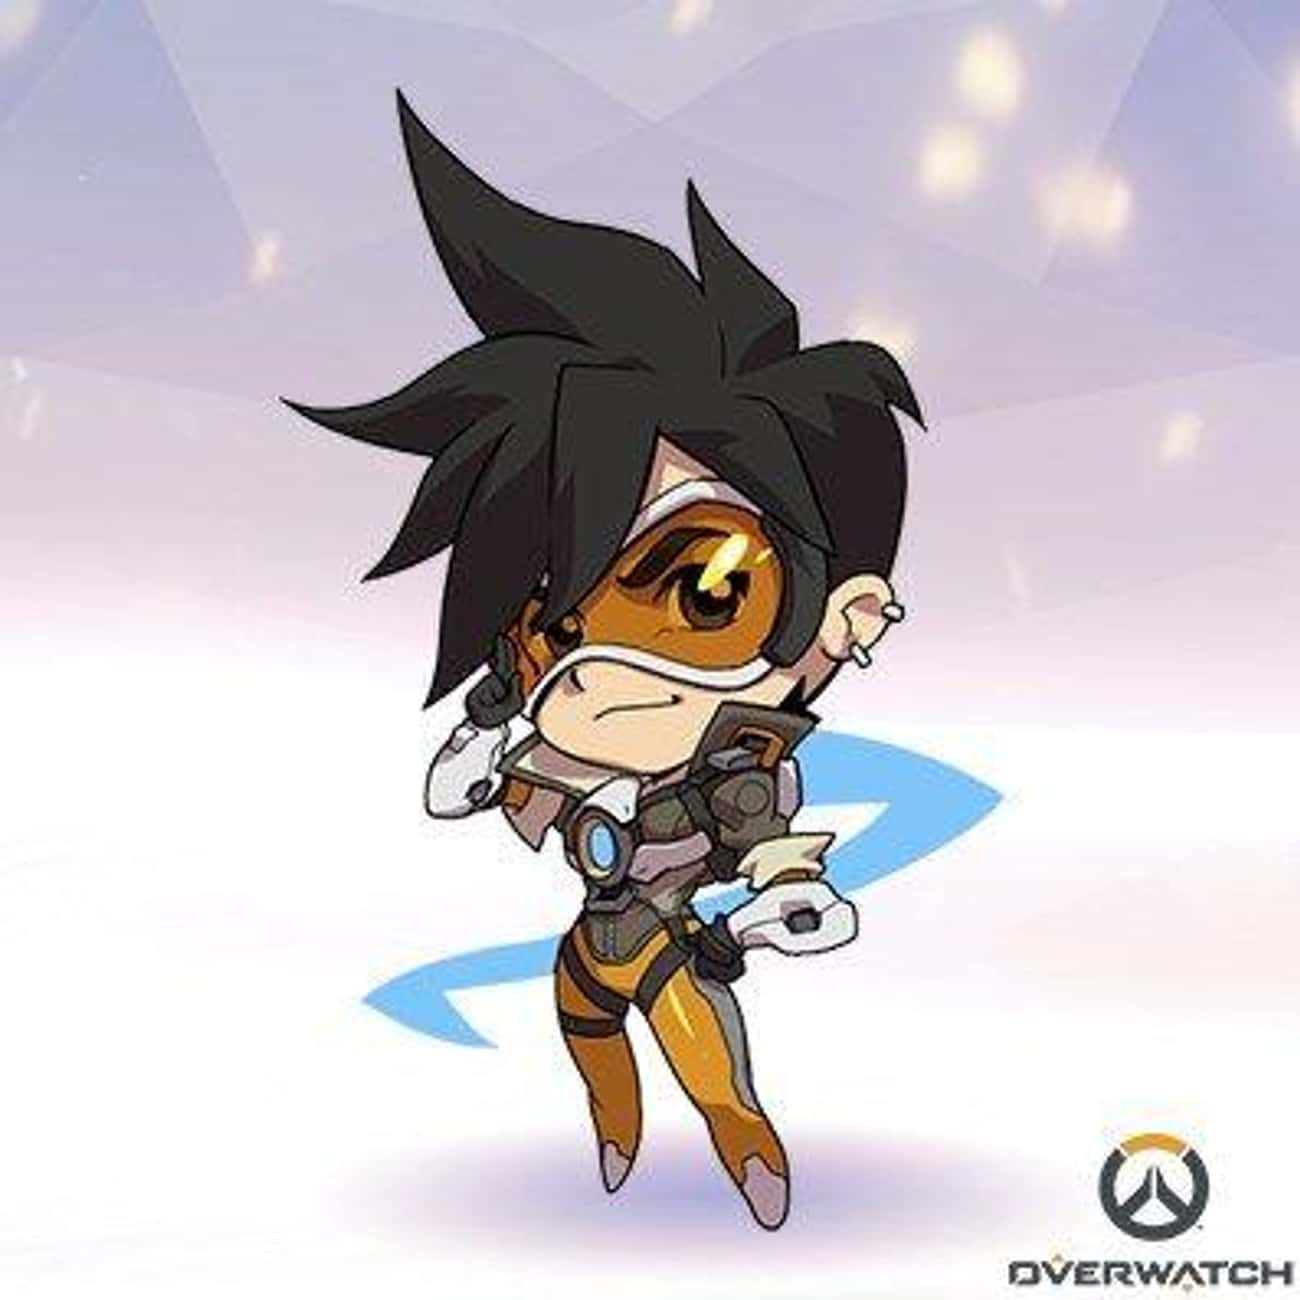 Tracer is listed (or ranked) 4 on the list Overwatch Heroines You'd Want to Have a Romantic Dinner With